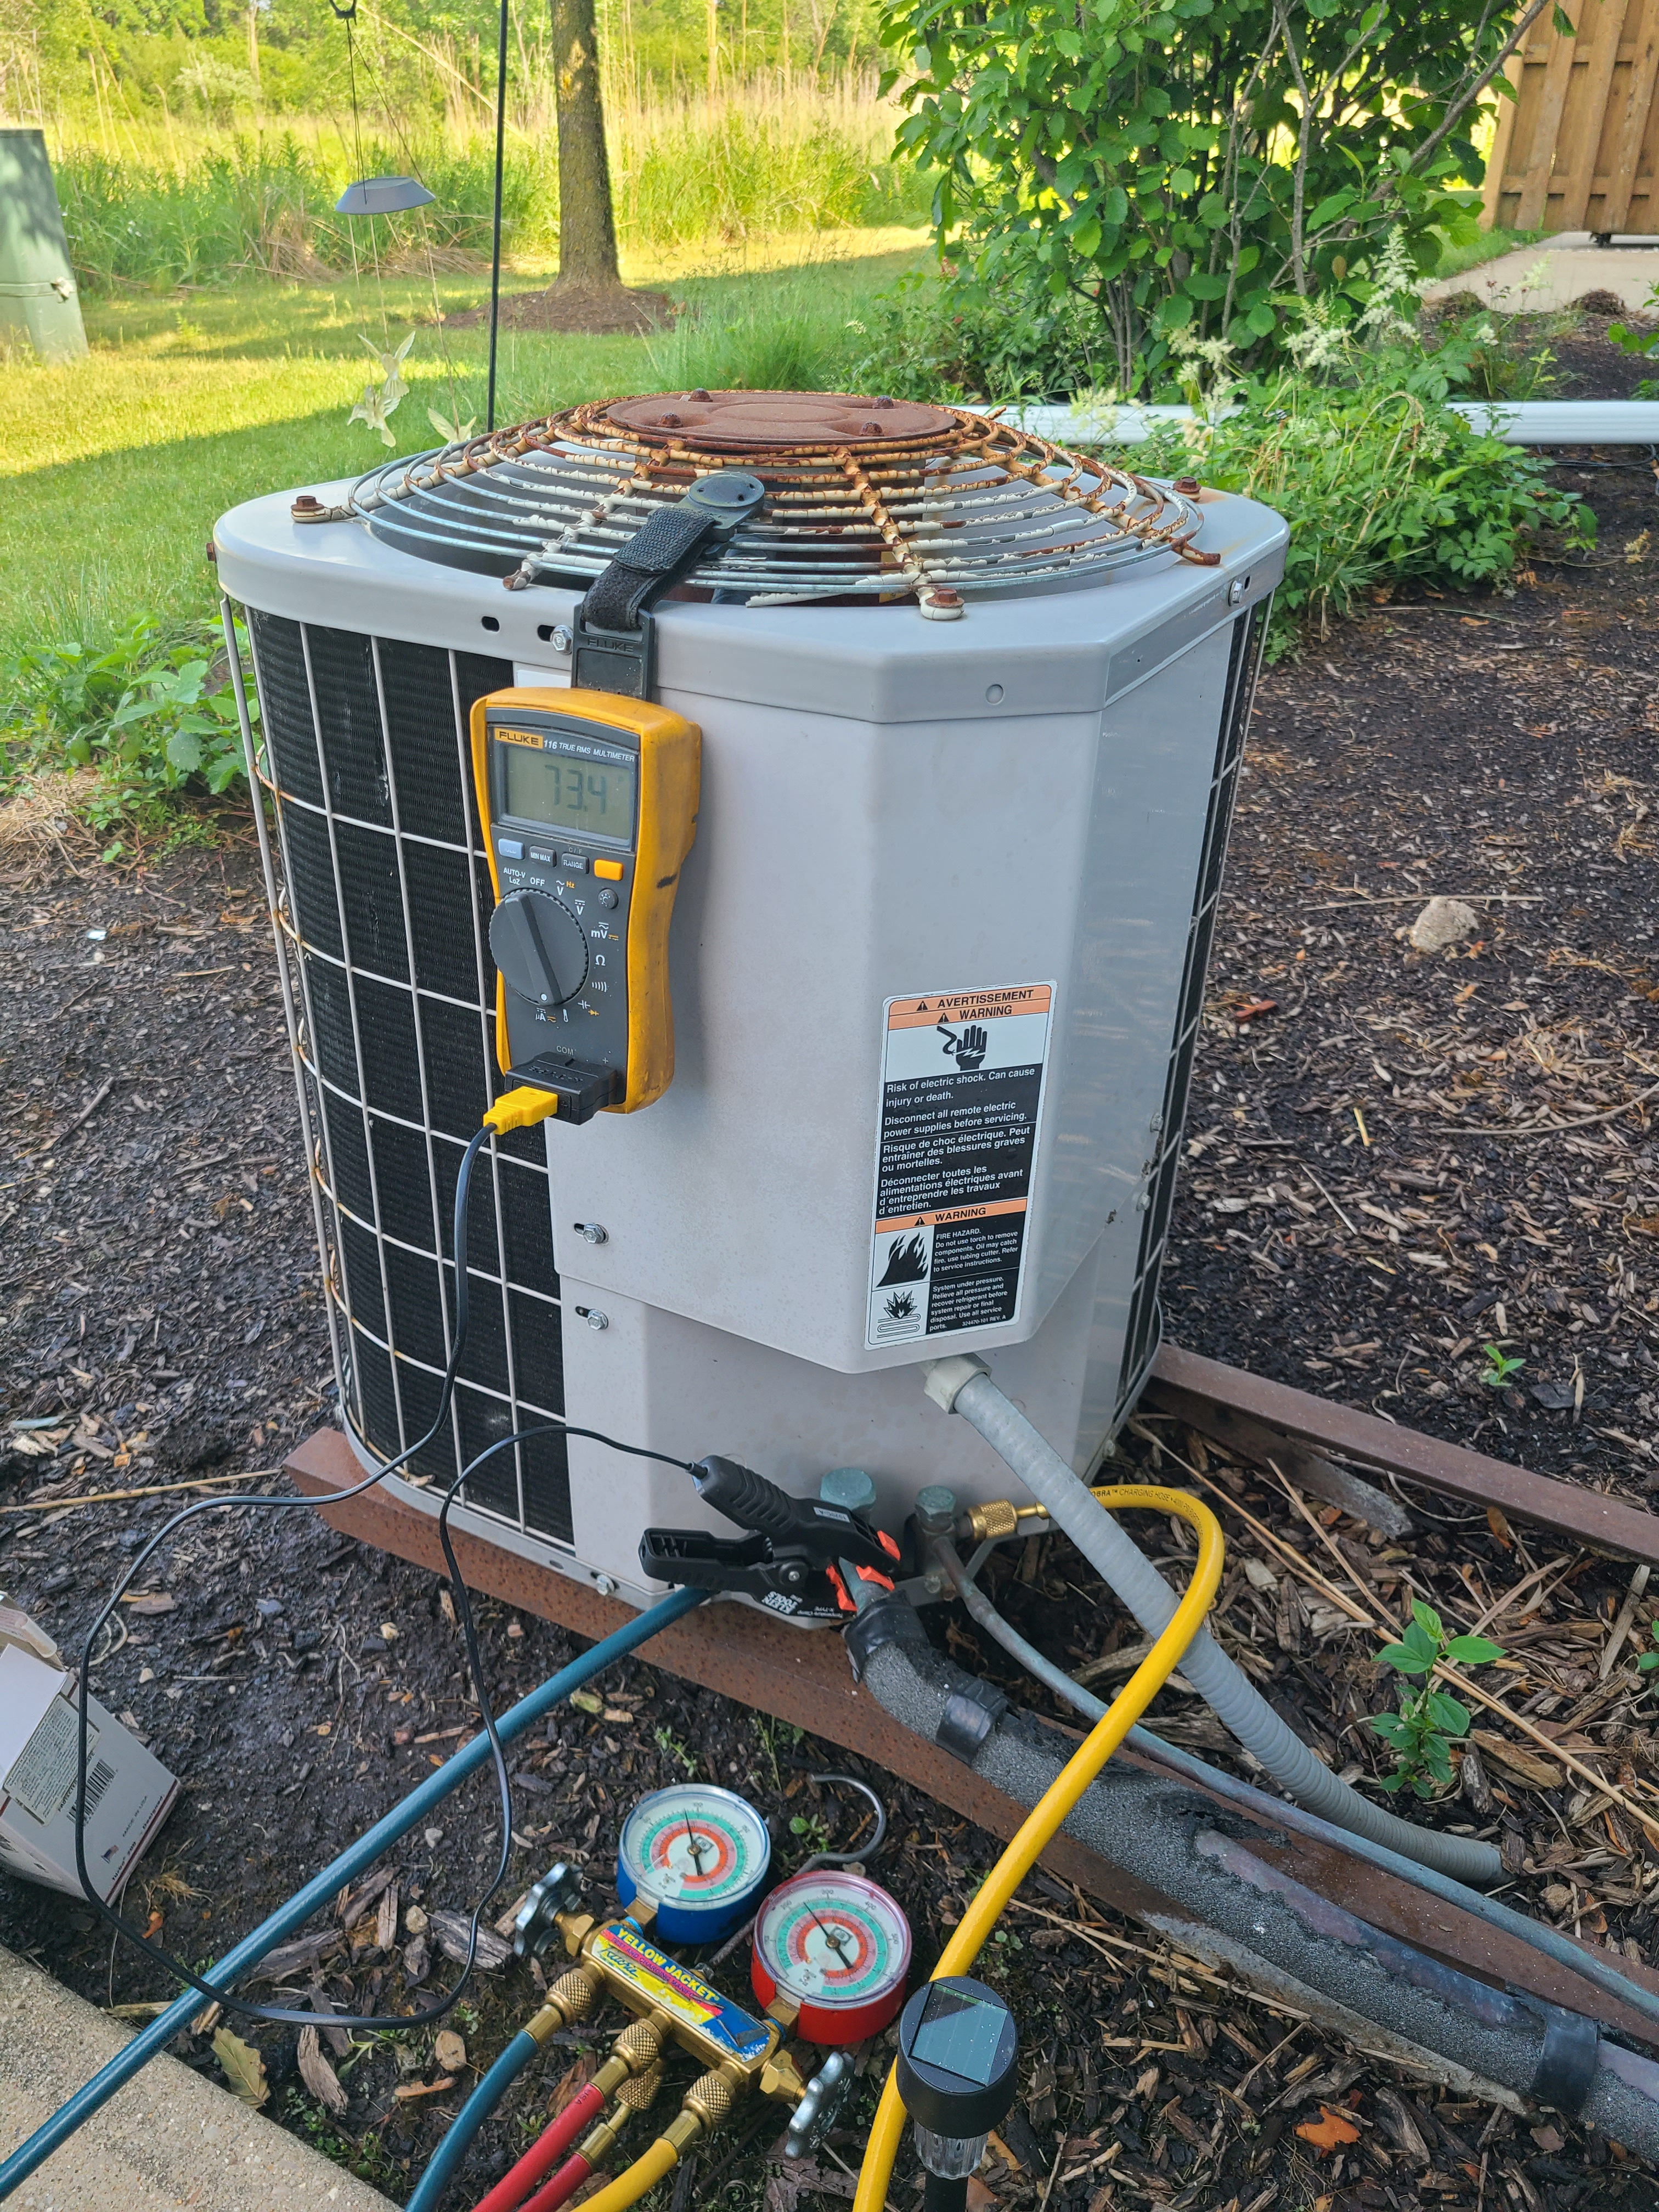 Carrier ac no cooling issue diagnosed and repaired. New capacitor installed and system running good now!